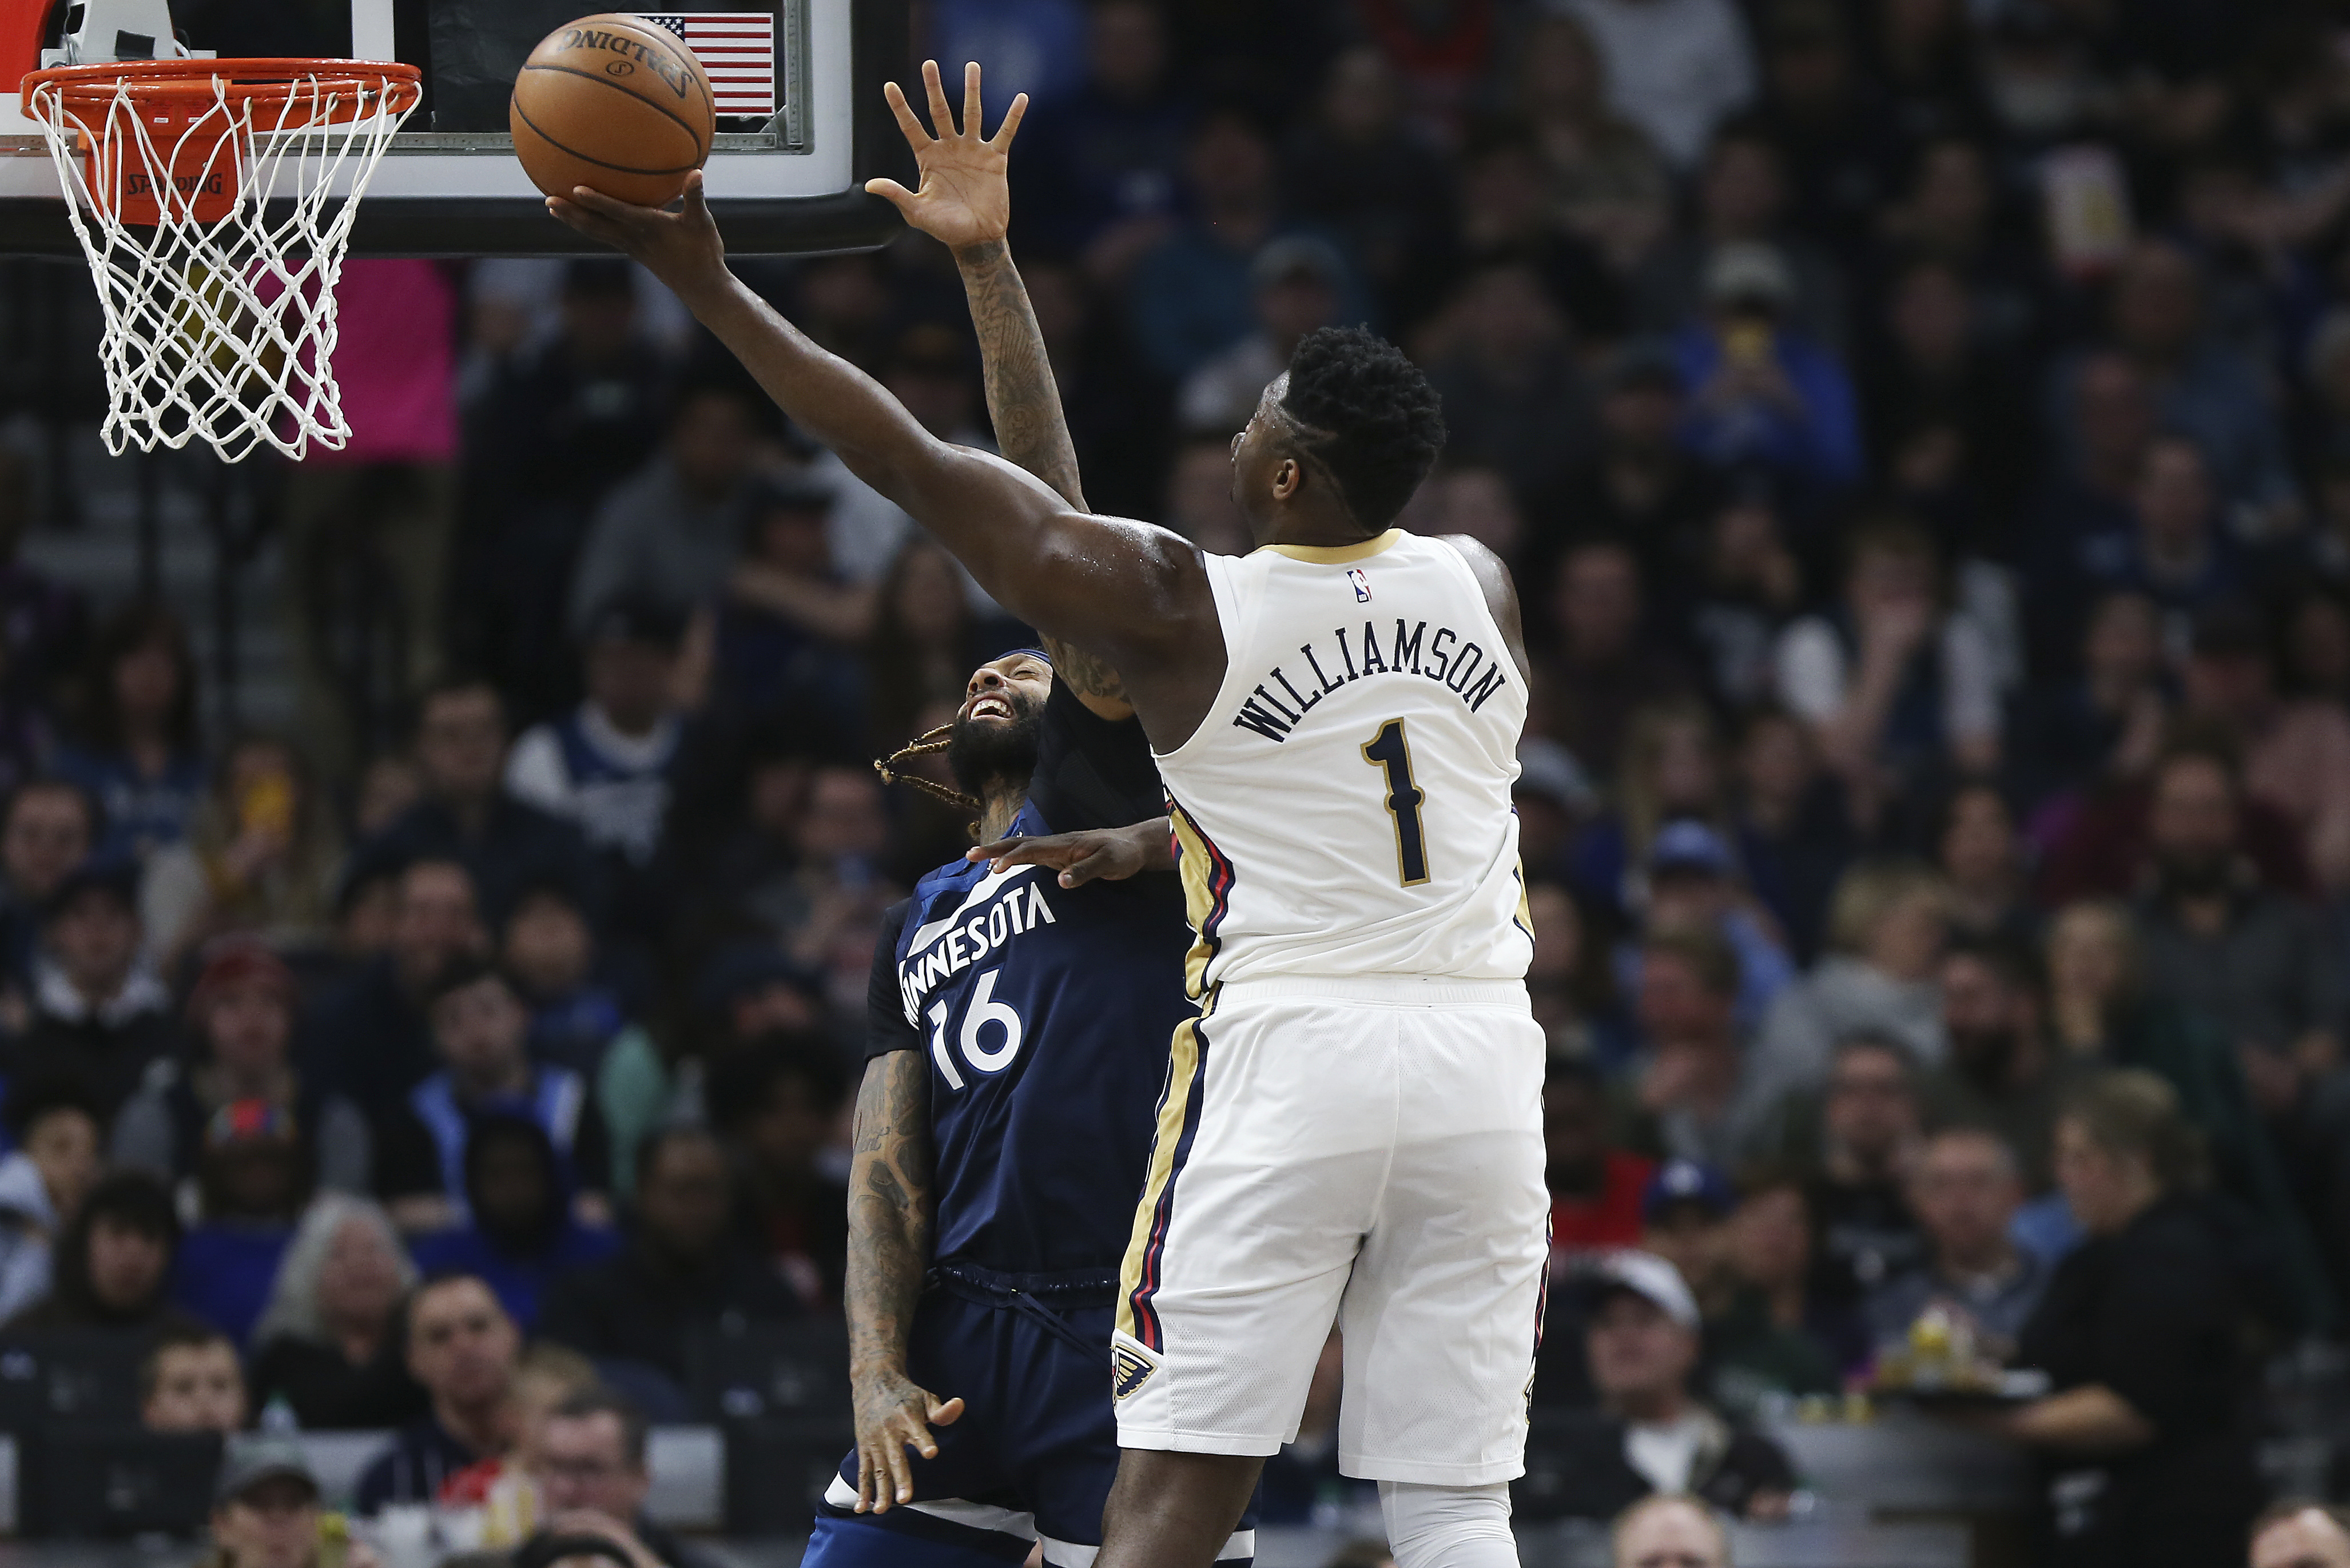 Holiday has 37 points help Pelicans top Timberwolves 120-107